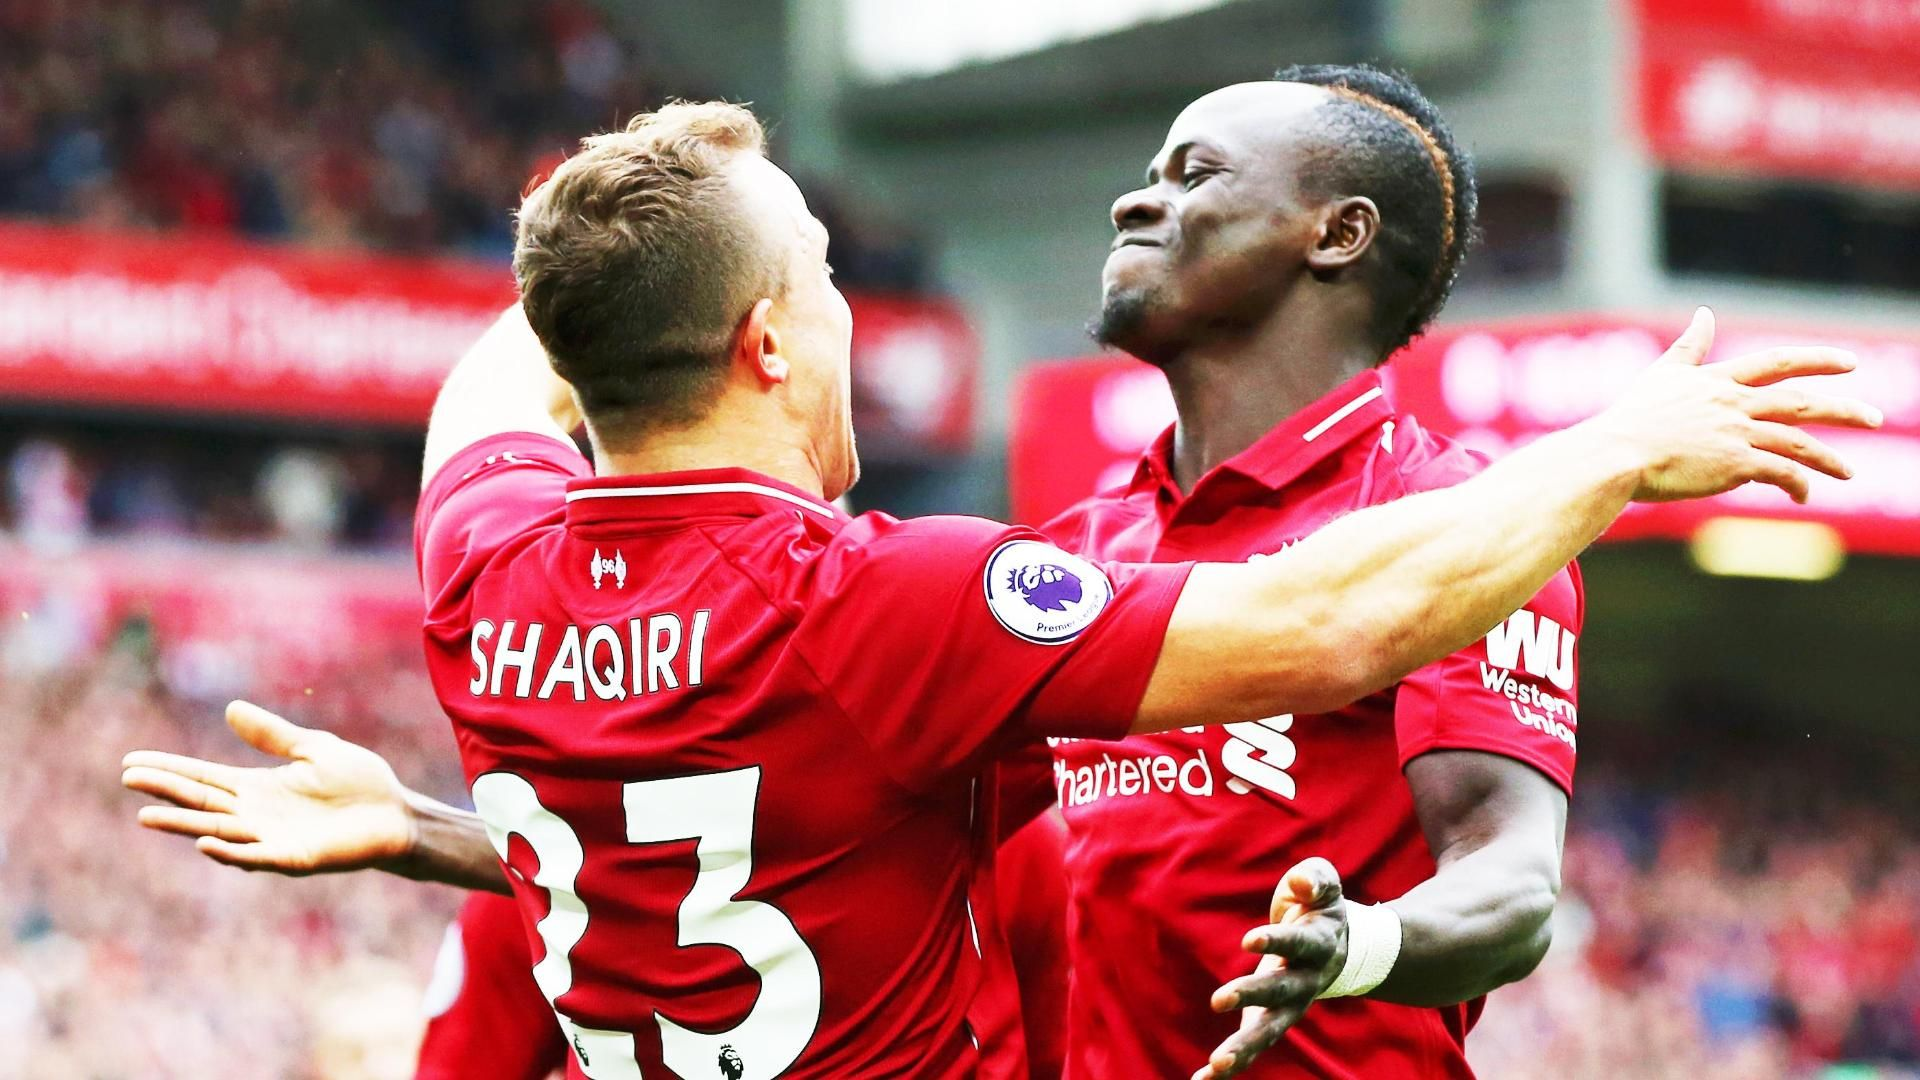 Liverpool stay top, City sizzle